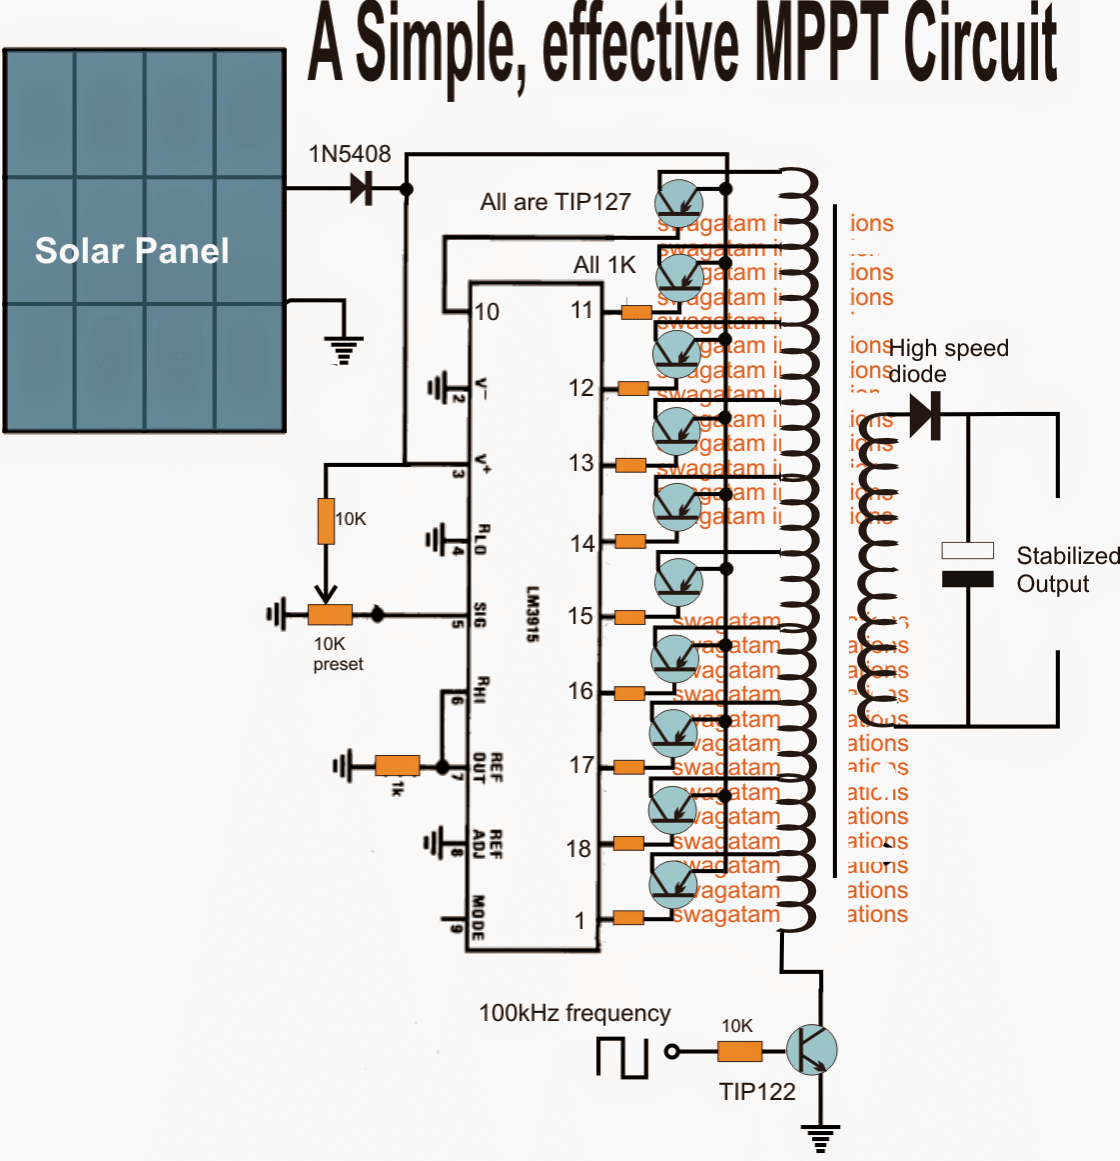 Homemade Solar Mppt Circuit Poor Man39s Maximum Power Point Tracker Simple Cell Battery Charger Diagram Diagrams Flyback Design